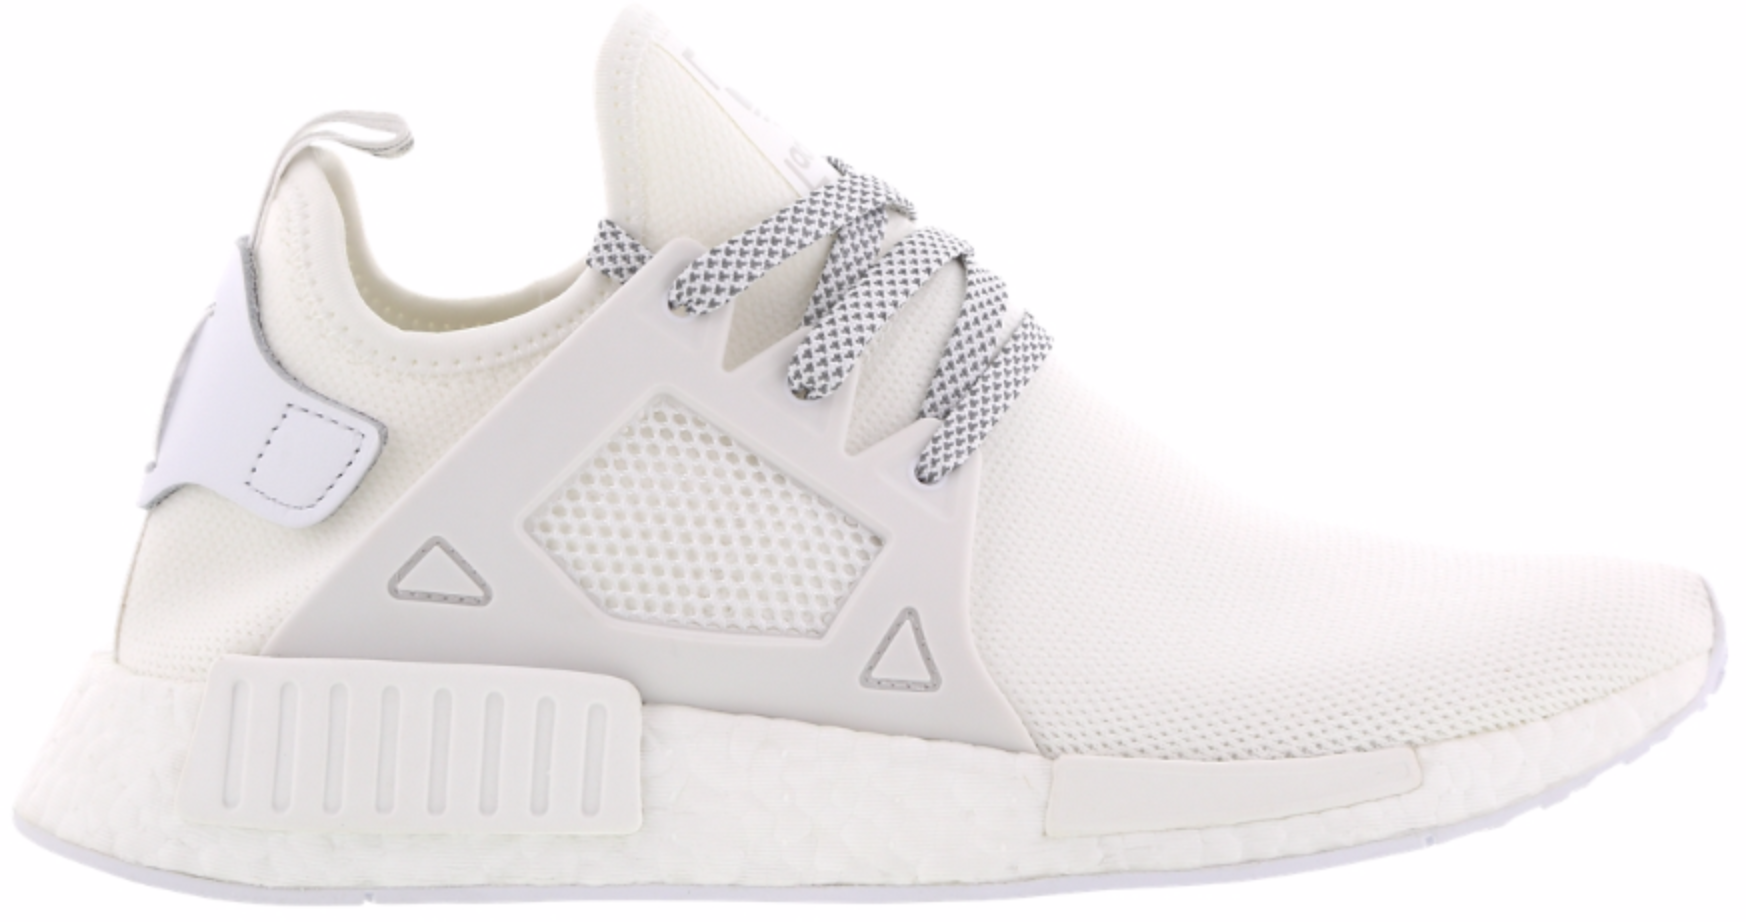 adidas NMD XR1 Footlocker Europe Triple White